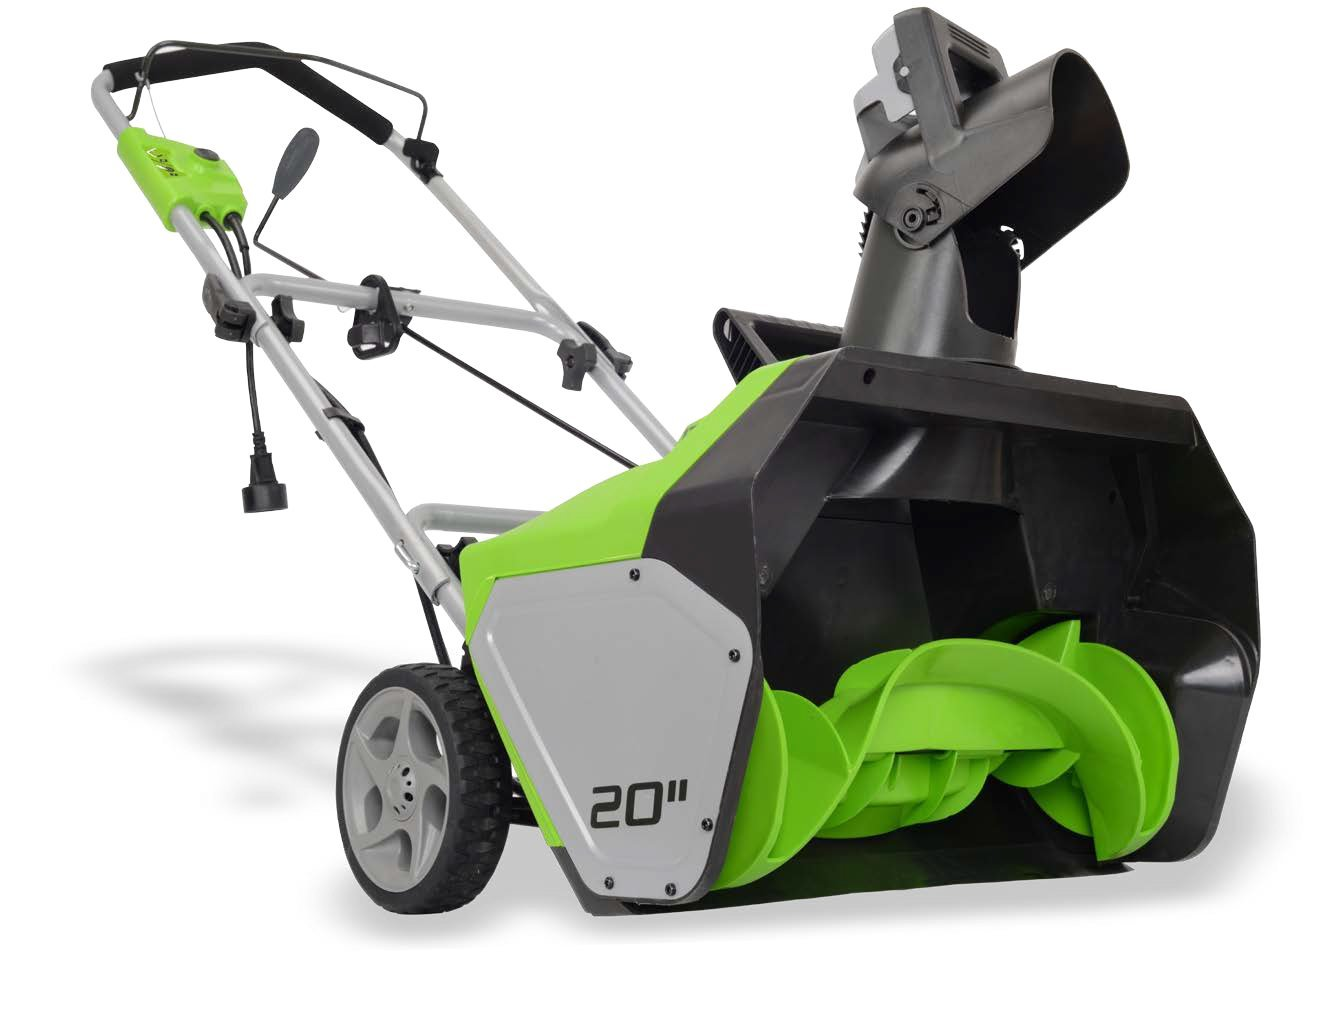 61o55dAIaTL._SL1337_ amazon com greenworks 2600502 13 amp 20 inch corded snow thrower  at honlapkeszites.co